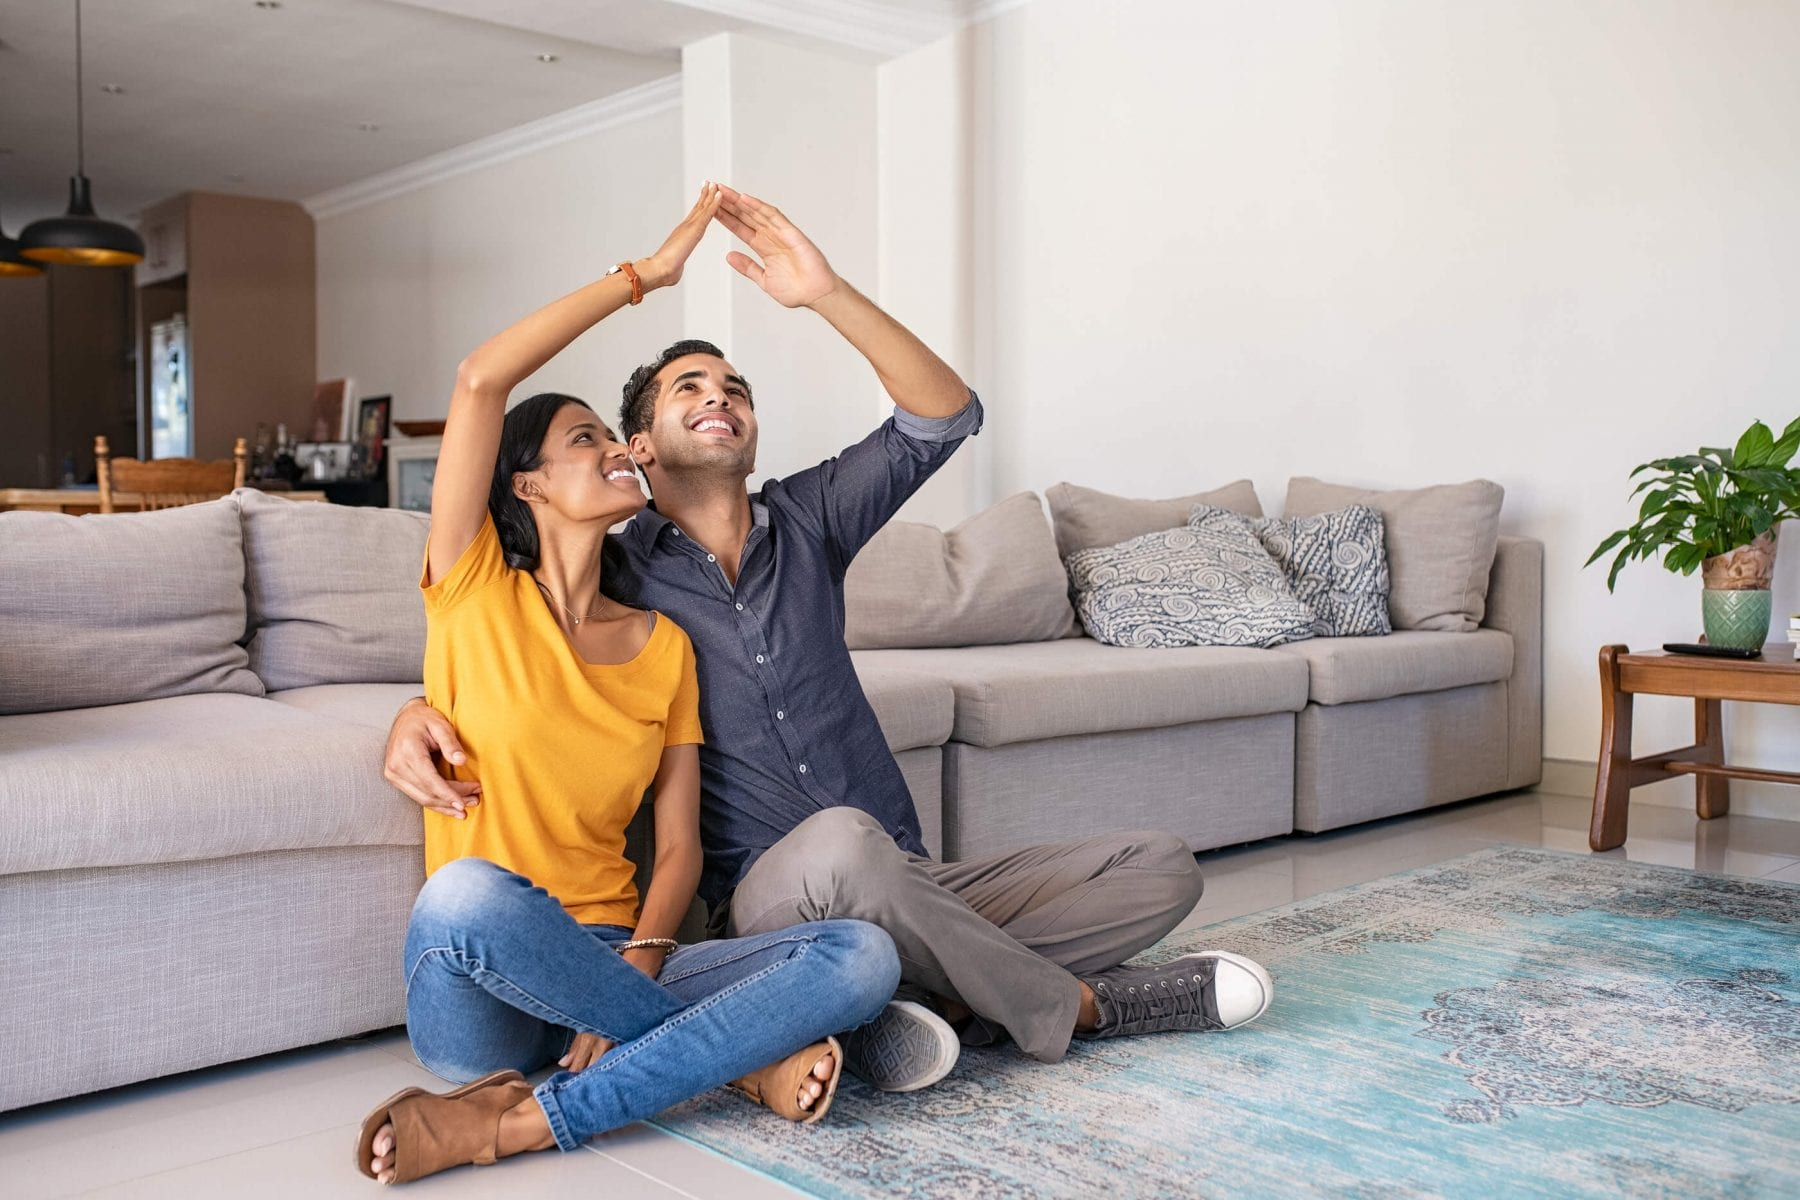 South Asian couple sitting on the floor in living room dreaming of homeownership